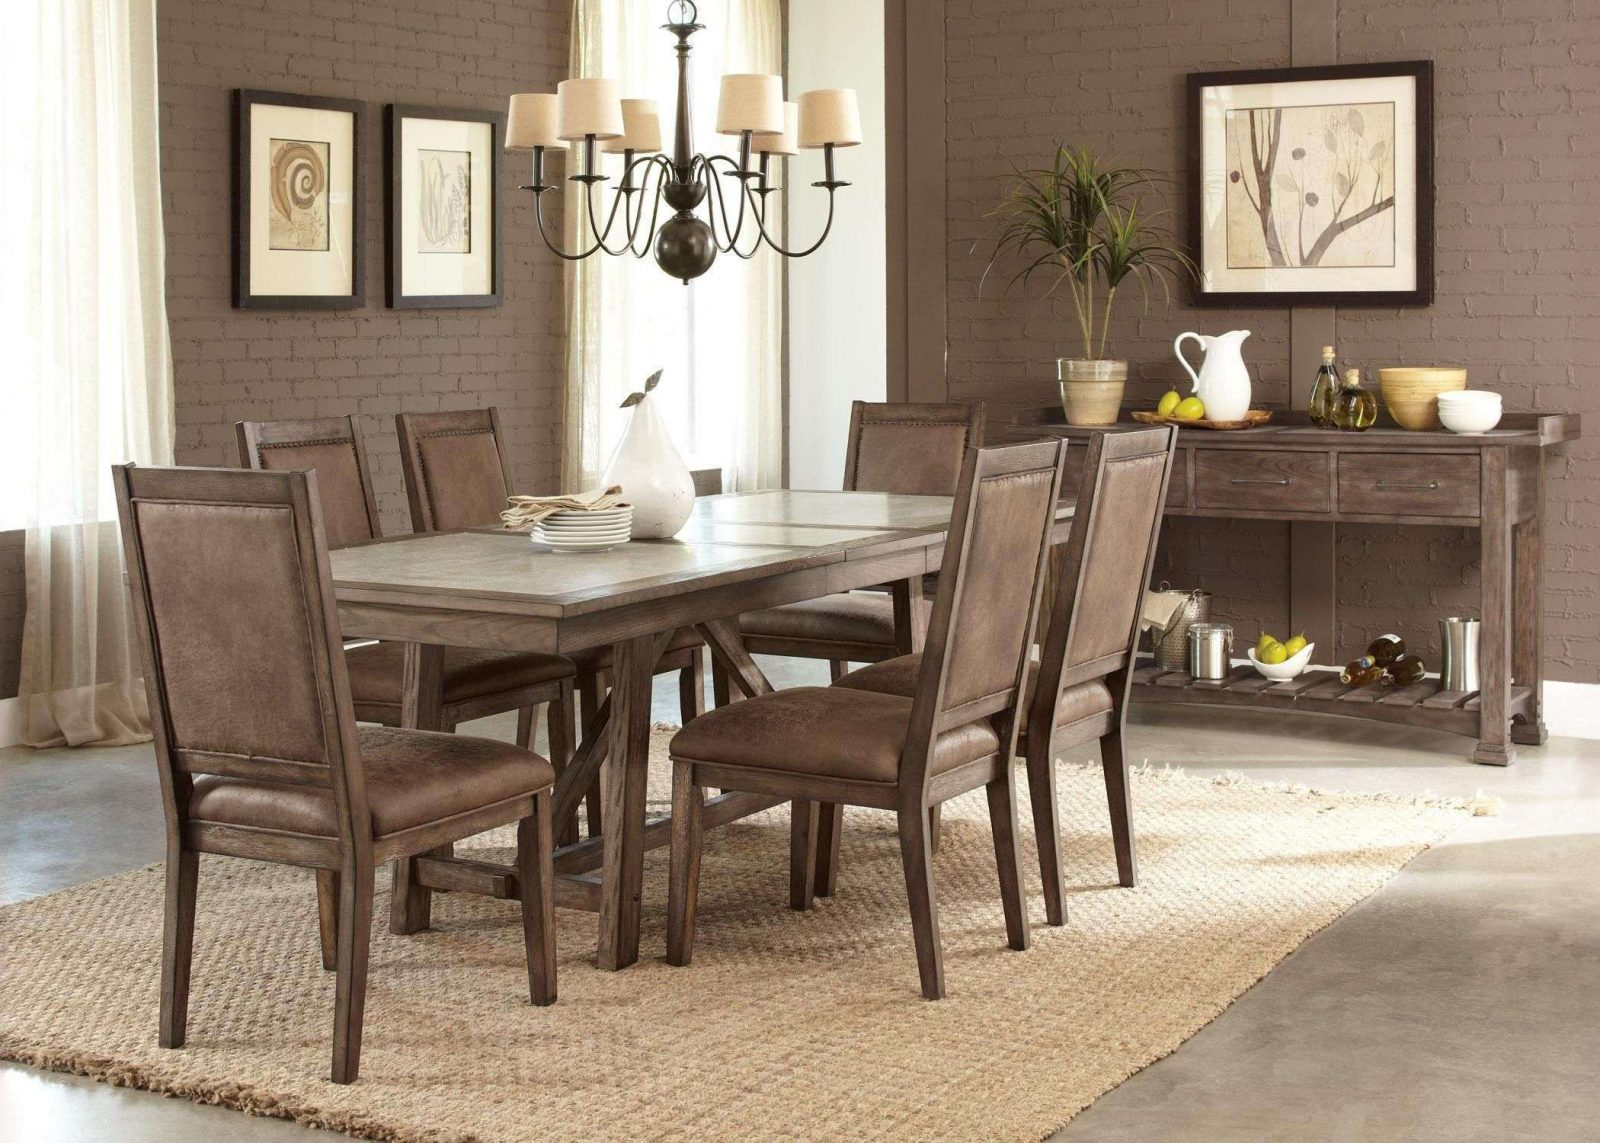 value city furniture dining room americanw mag clarise accent gorgeous tables black chair chairs unique bes for table small half round patio solid wood threshold mat compact set